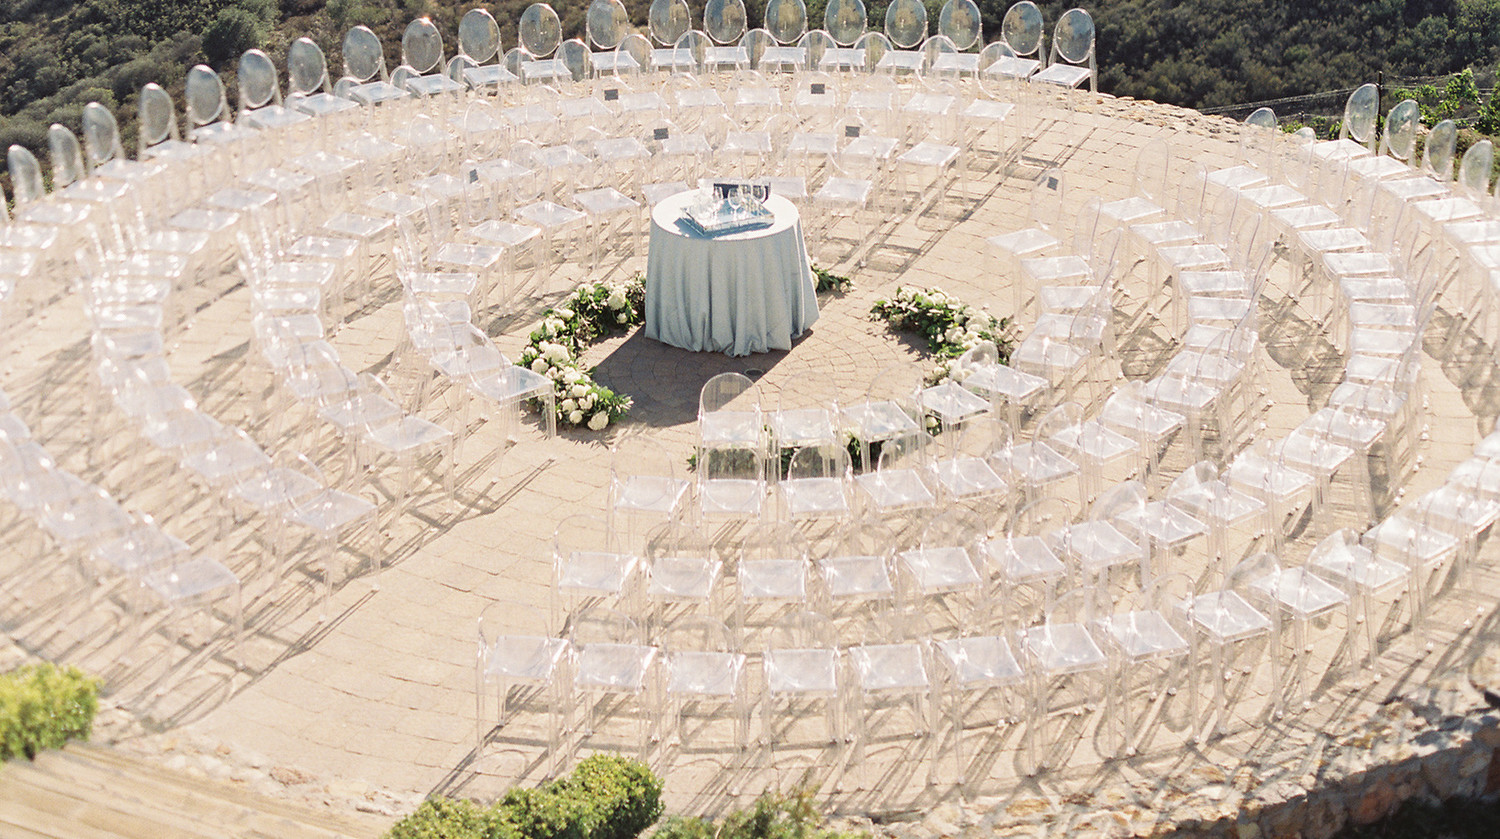 Unique Ceremony Seating Ideas For Outdoor Weddings: 28 Unique Ways To Seat Guests At Your Wedding Ceremony